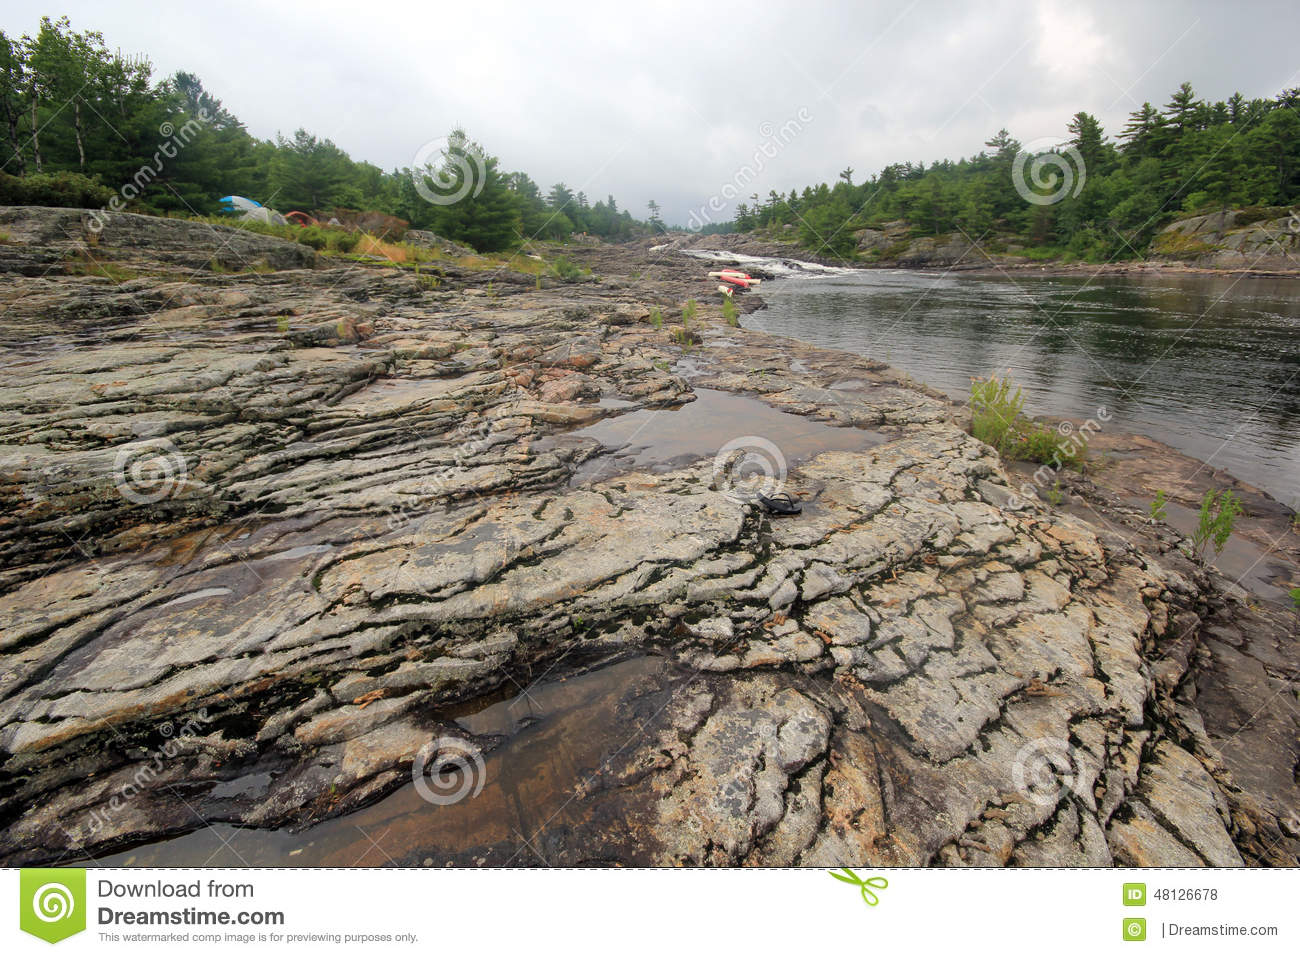 Exposed Rock River Landscape Stock Photo - Image: 48126678